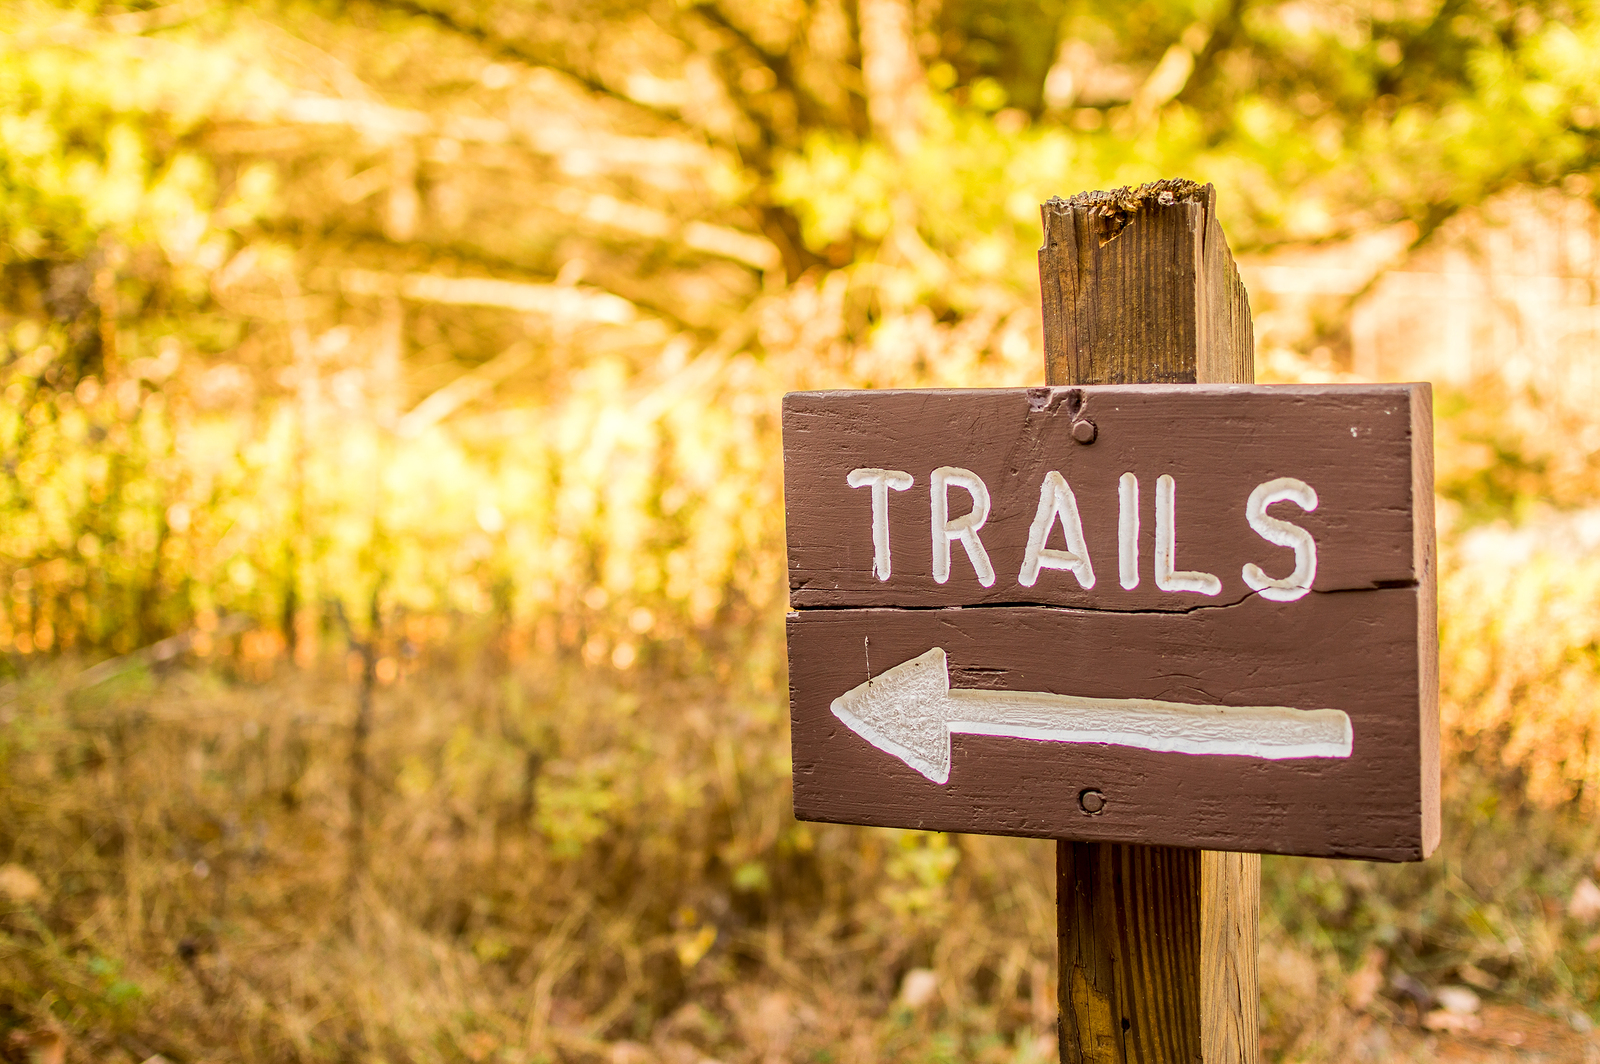 A trail sign from a hiking path in Northeastern Pennsylvania with golden foliage in the background